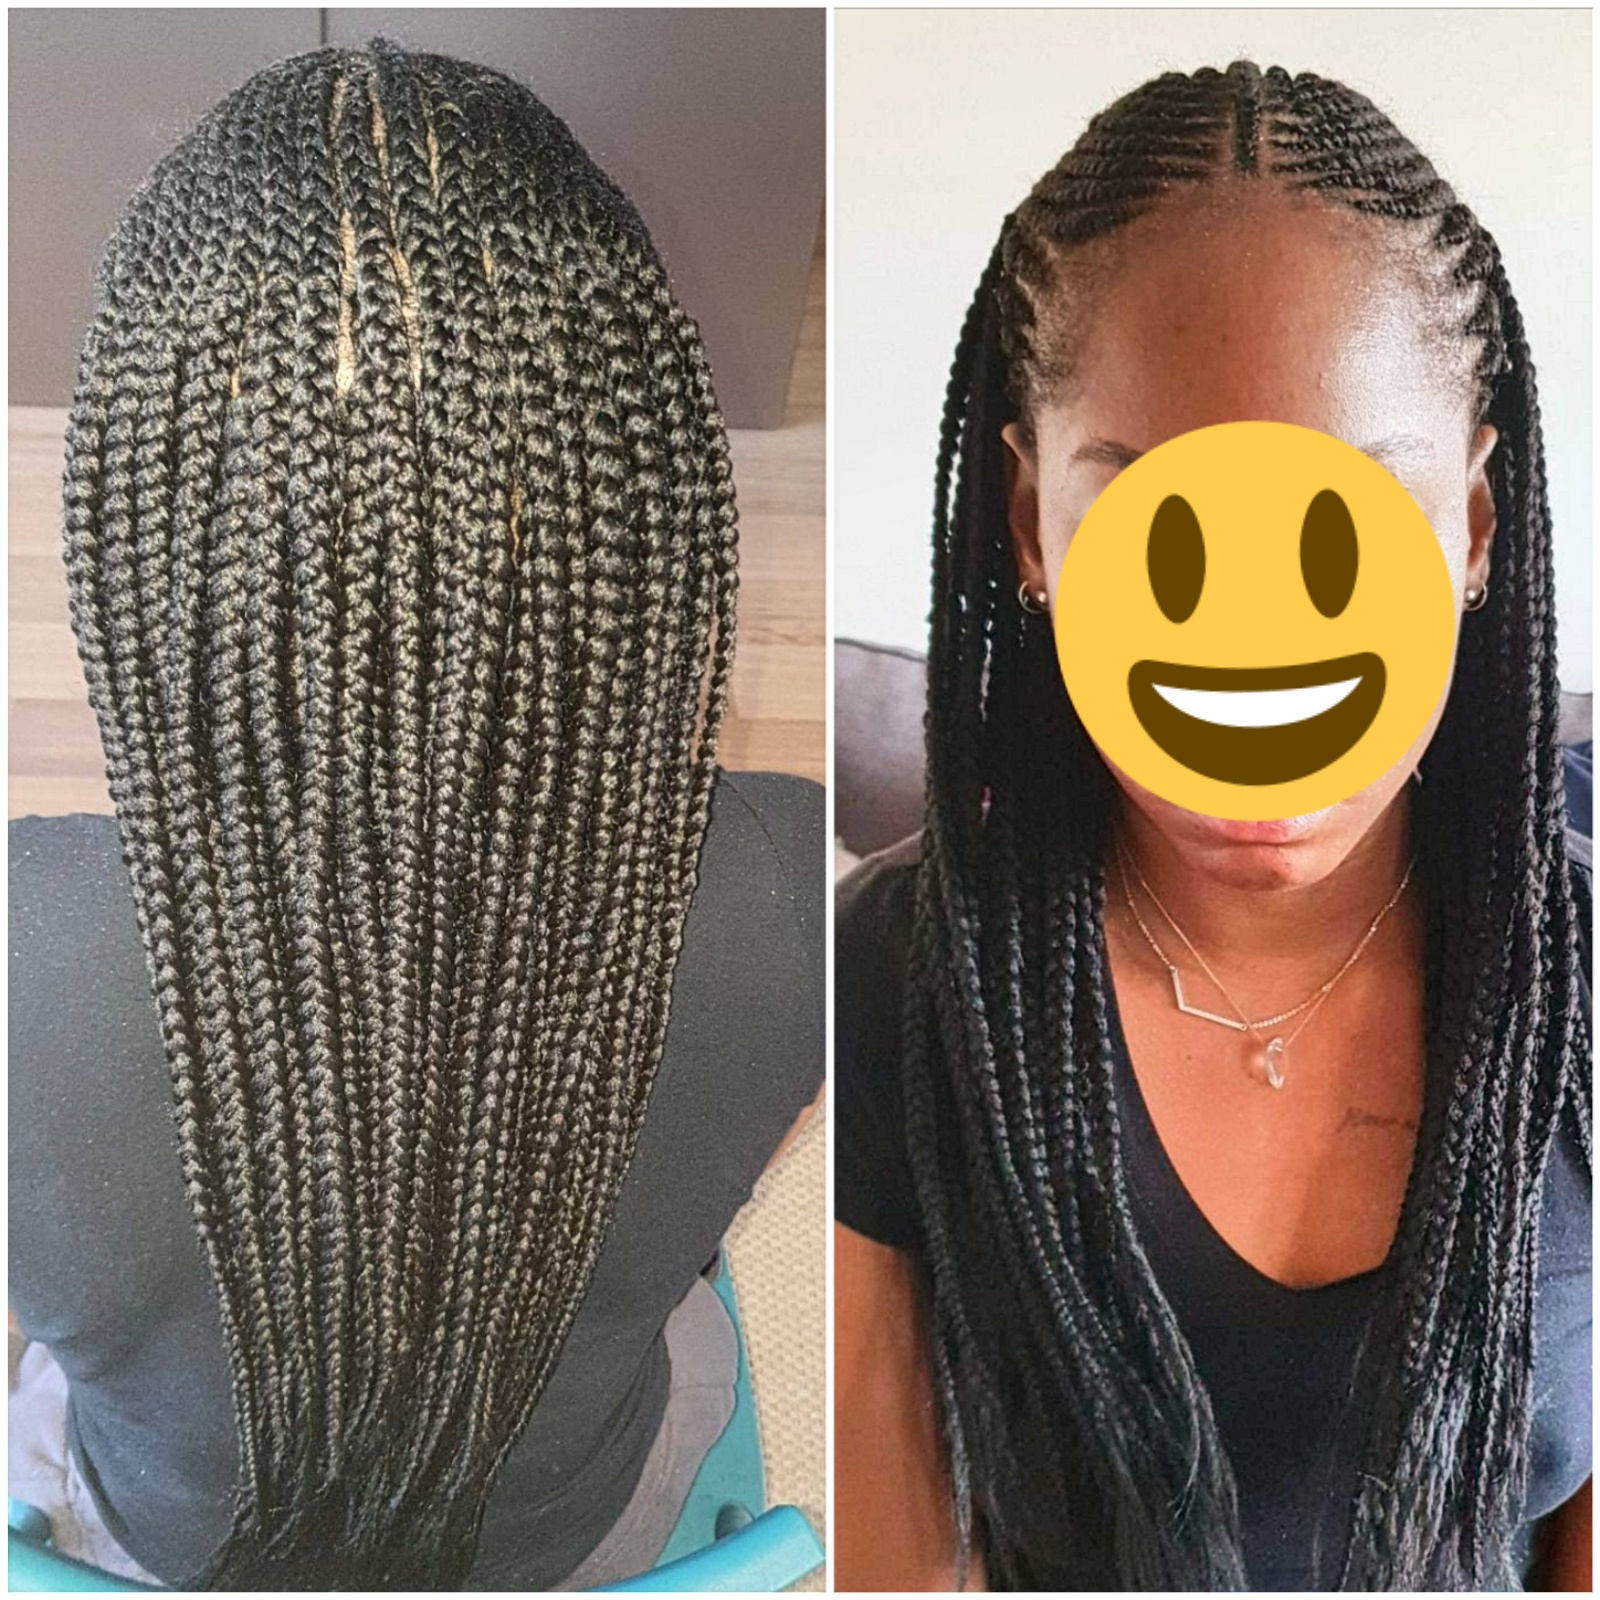 salon de coiffure afro tresse tresses box braids crochet braids vanilles tissages paris 75 77 78 91 92 93 94 95 HHSUPMVU